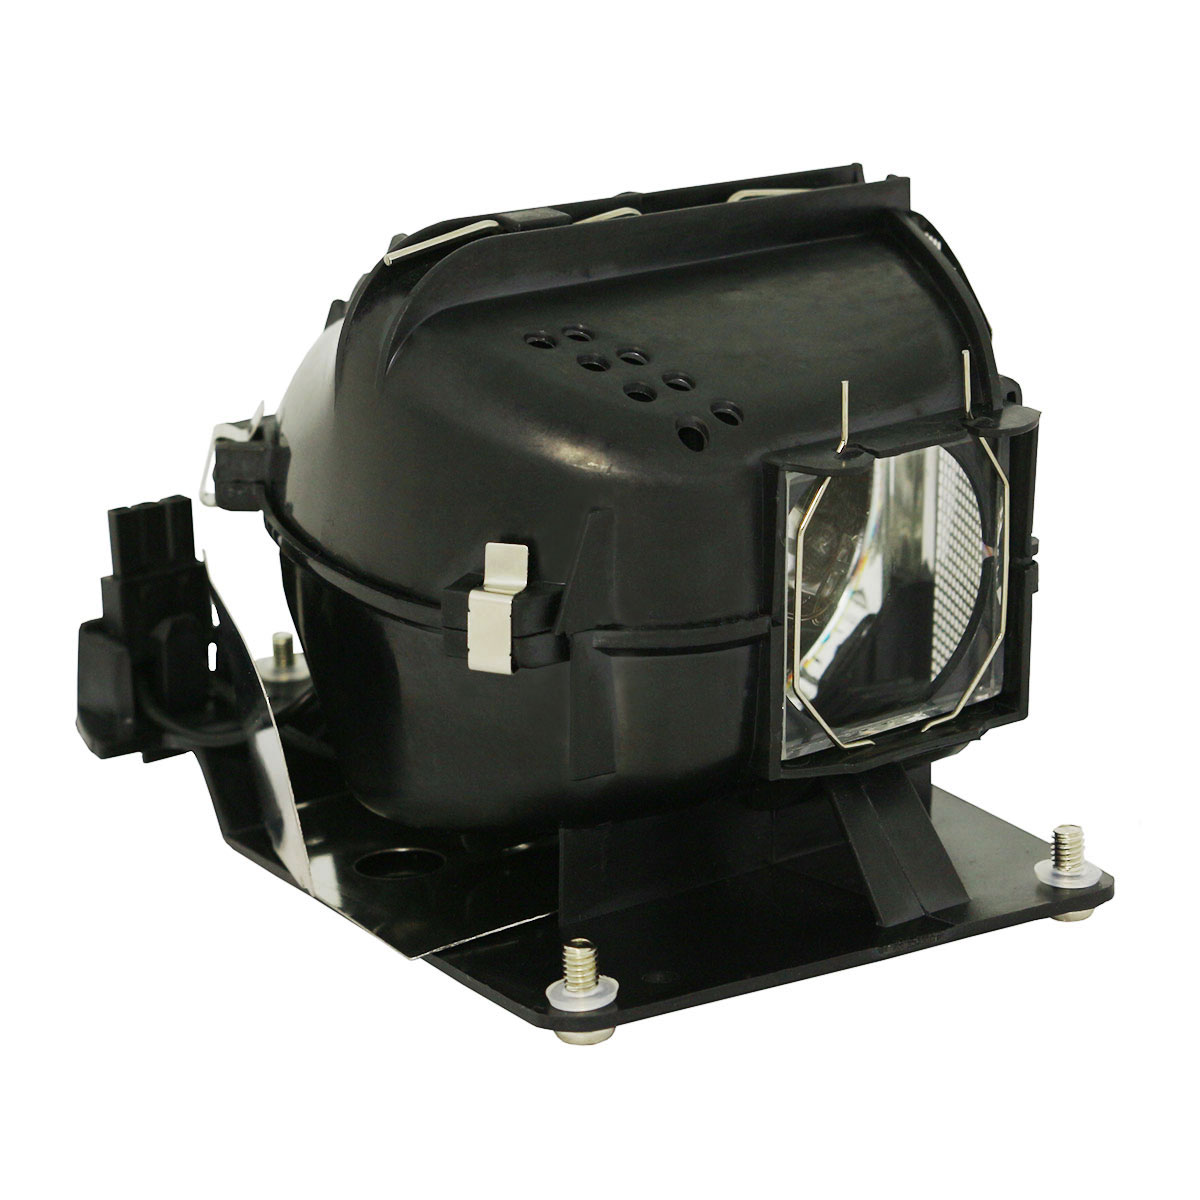 Lutema Economy for ASK Proxima M6 Projector Lamp (Bulb Only) - image 4 of 5